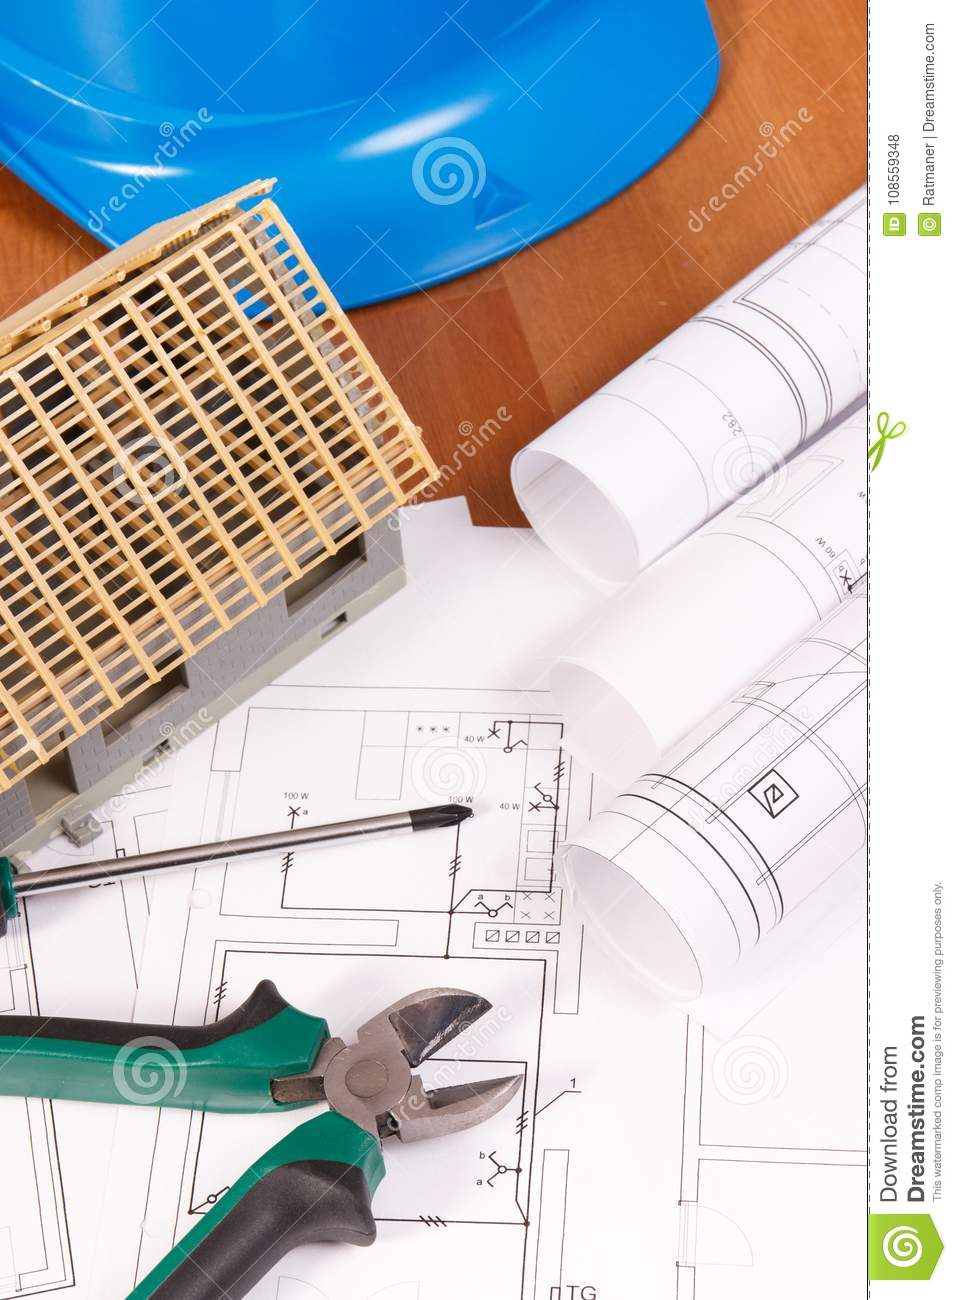 Electrical Drawings Work Tools Blue Helmet For Engineer Jobs And Drawing Of House Under Construction